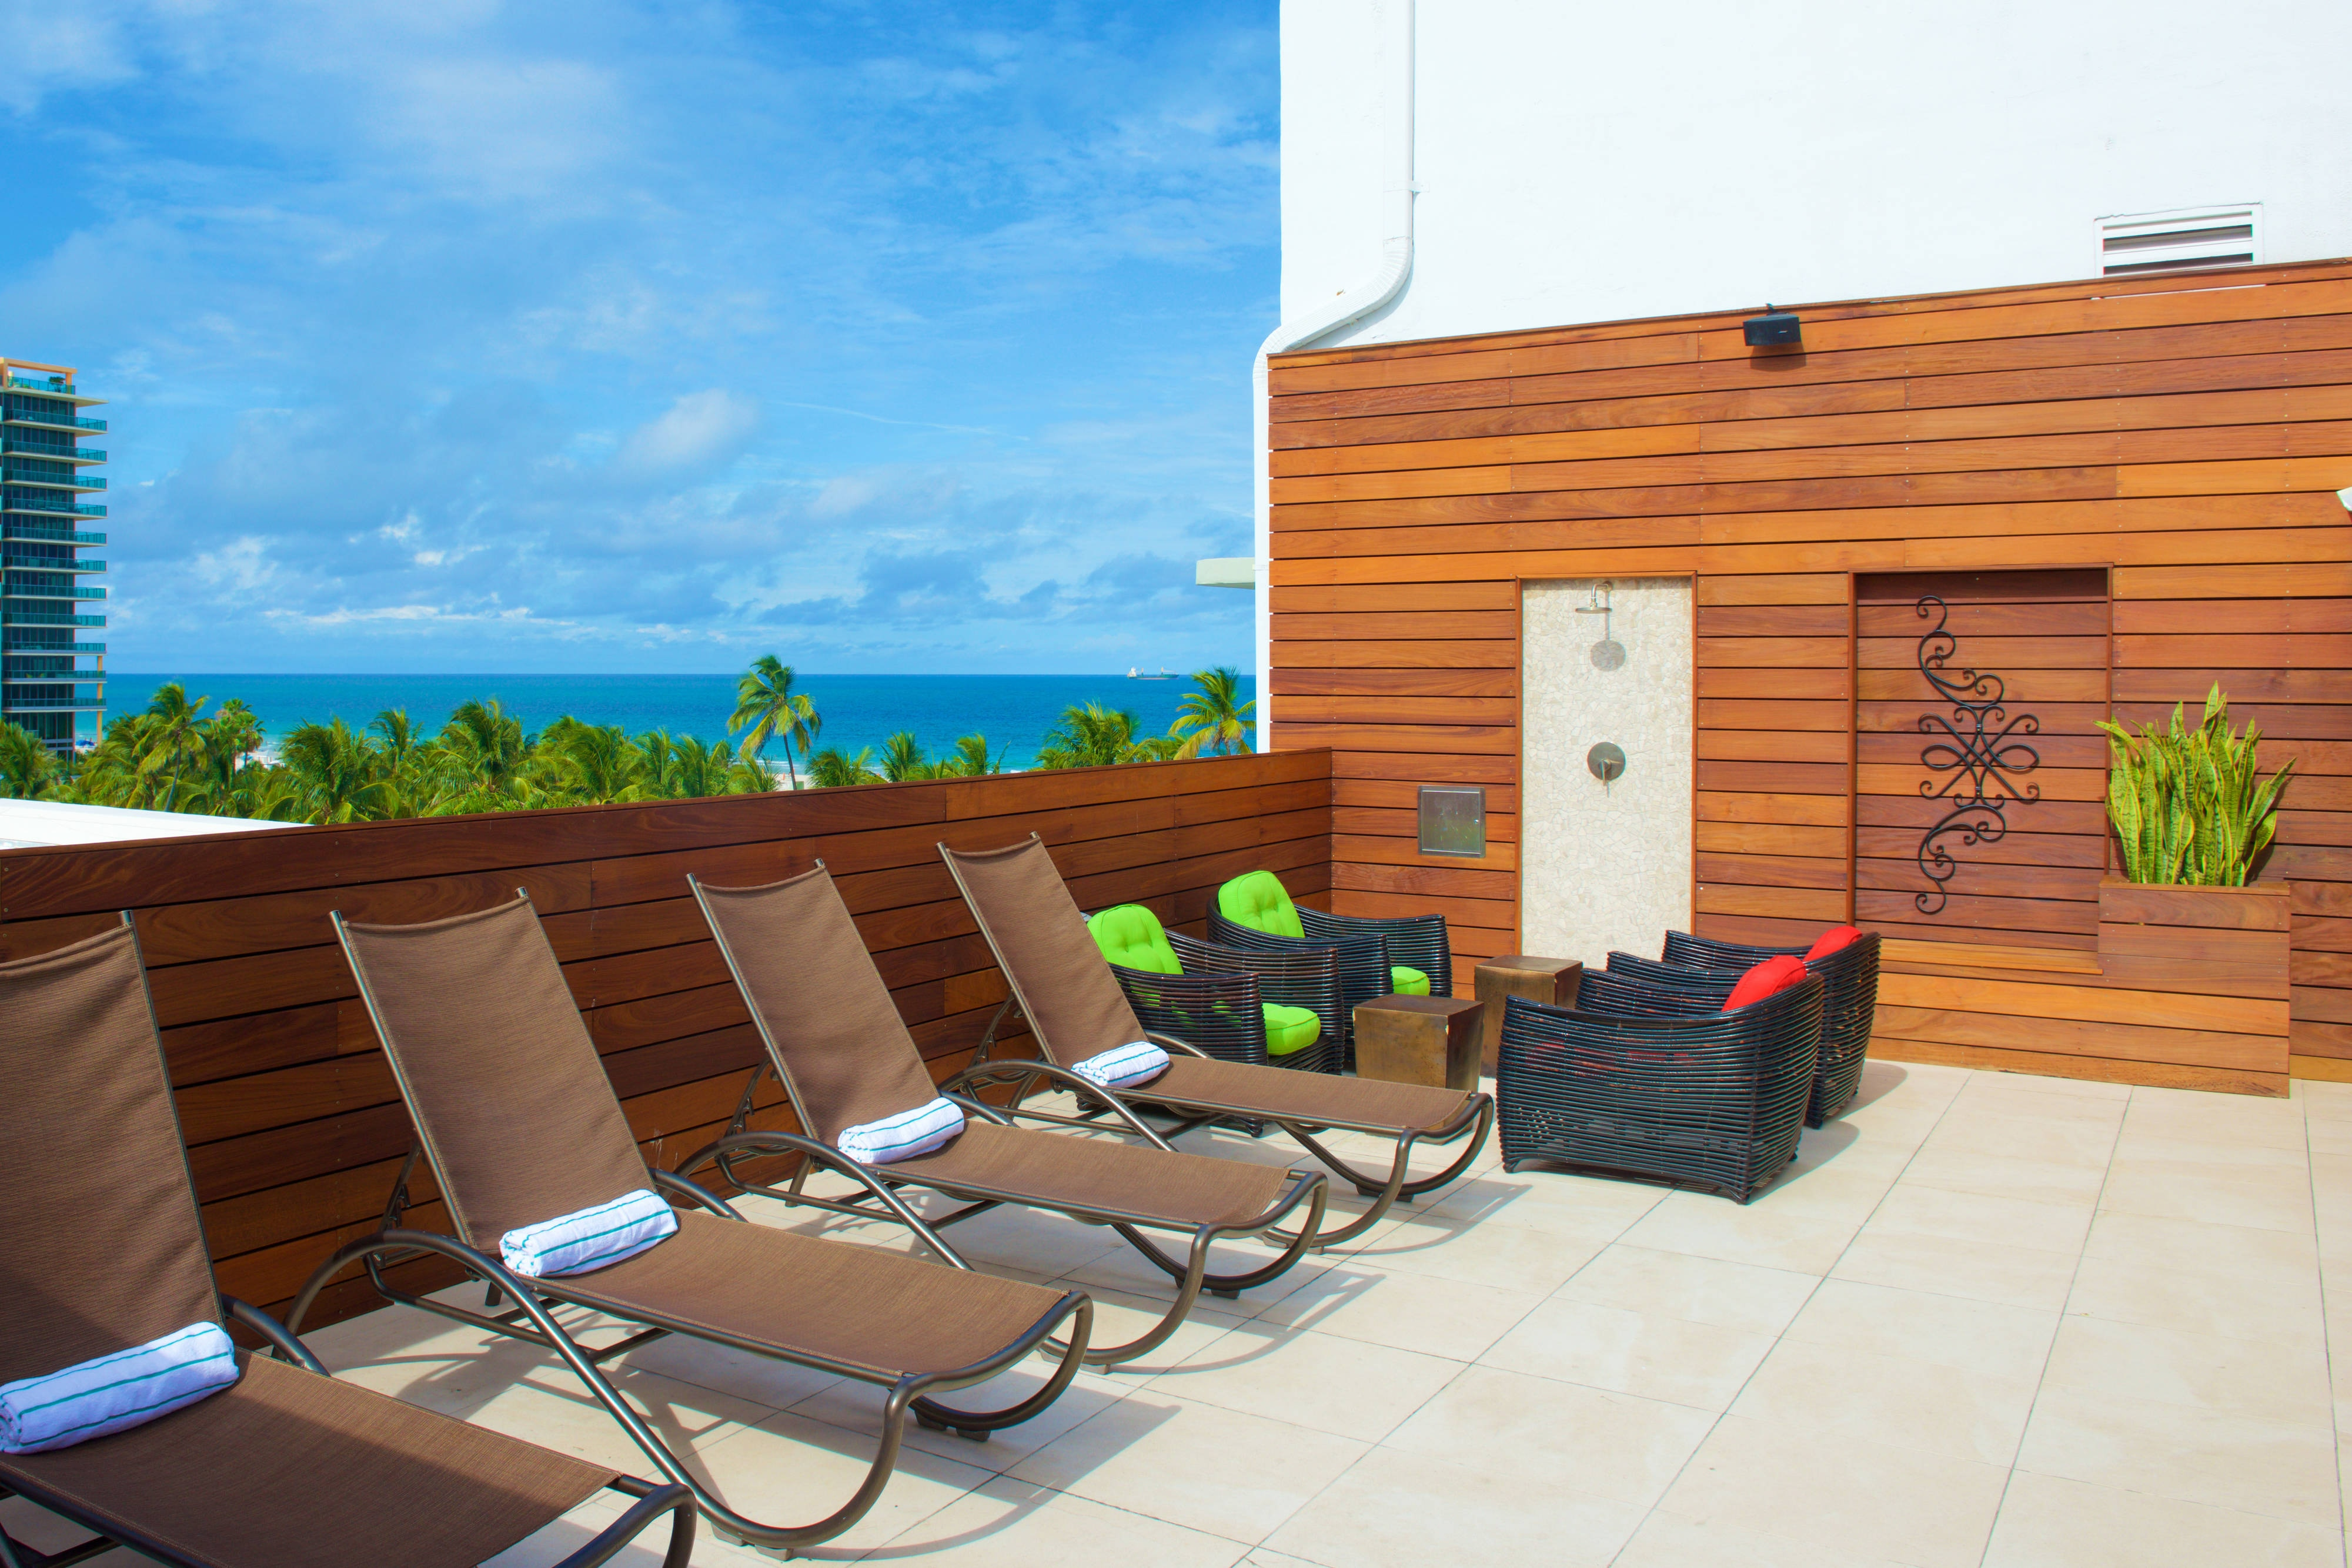 South Beach hotel rooftop sundeck